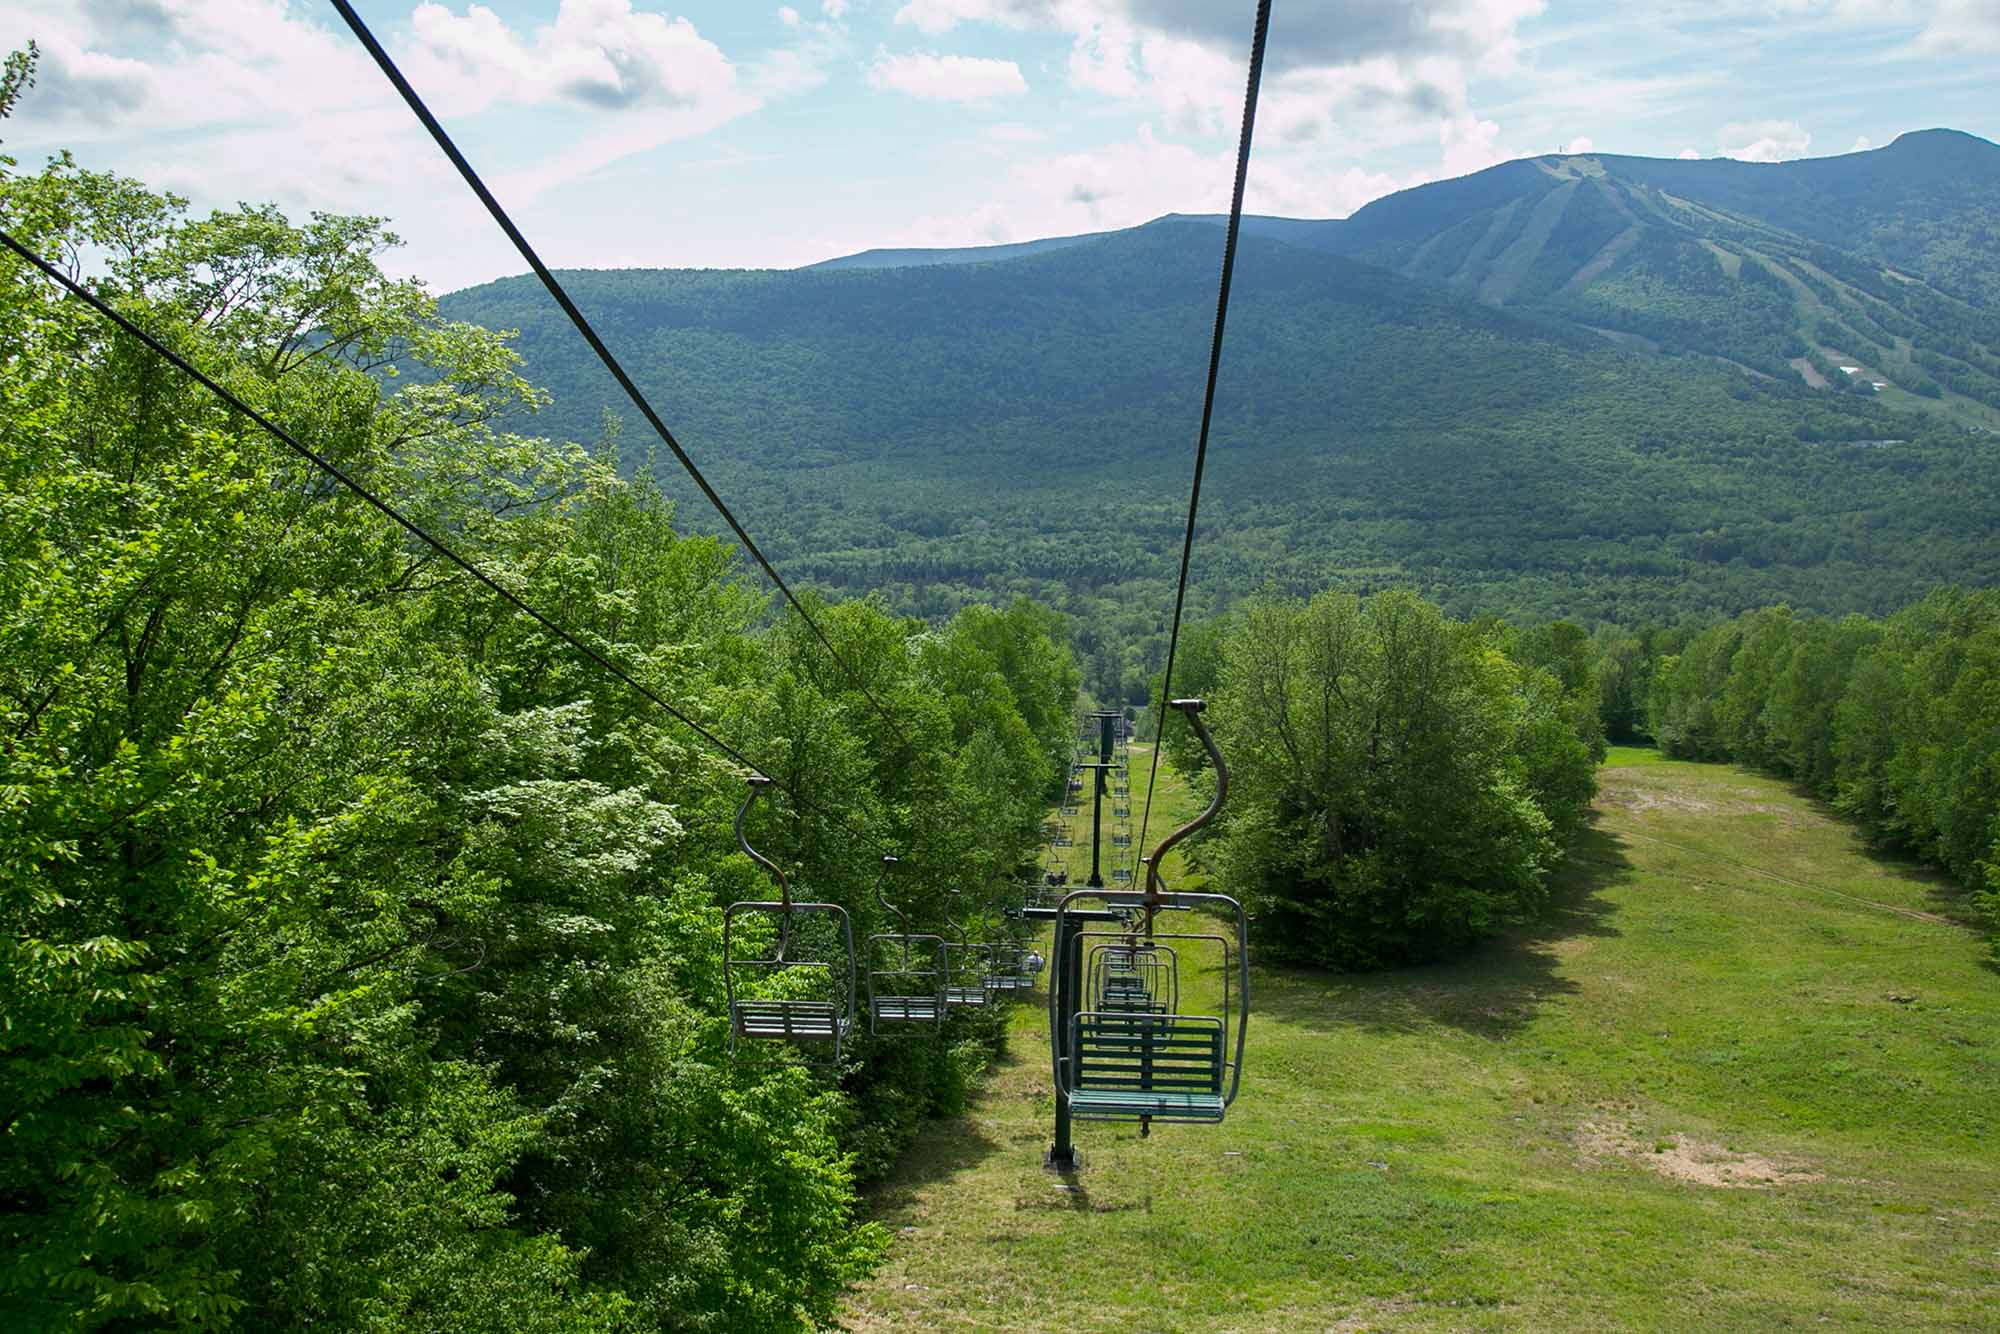 Snow's Mountain Chairlift